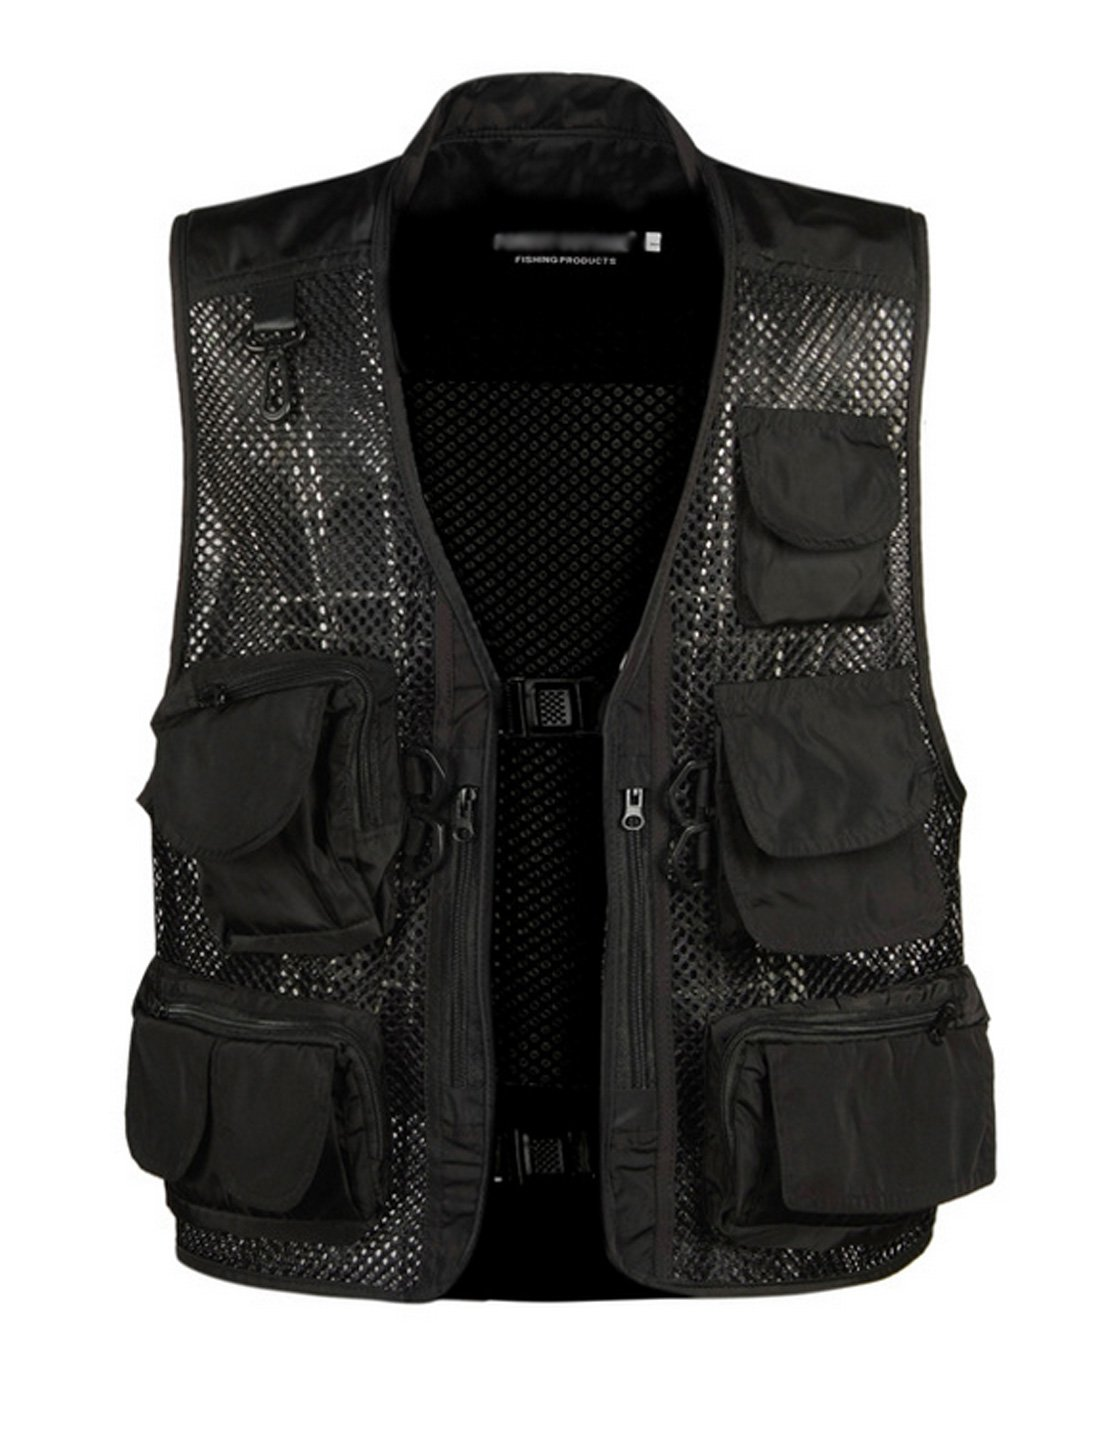 Gihuo Men's Outdoors Utility Hunting Travels Tactical Mesh Removable Vest with Multiple Pockets (L, Black)